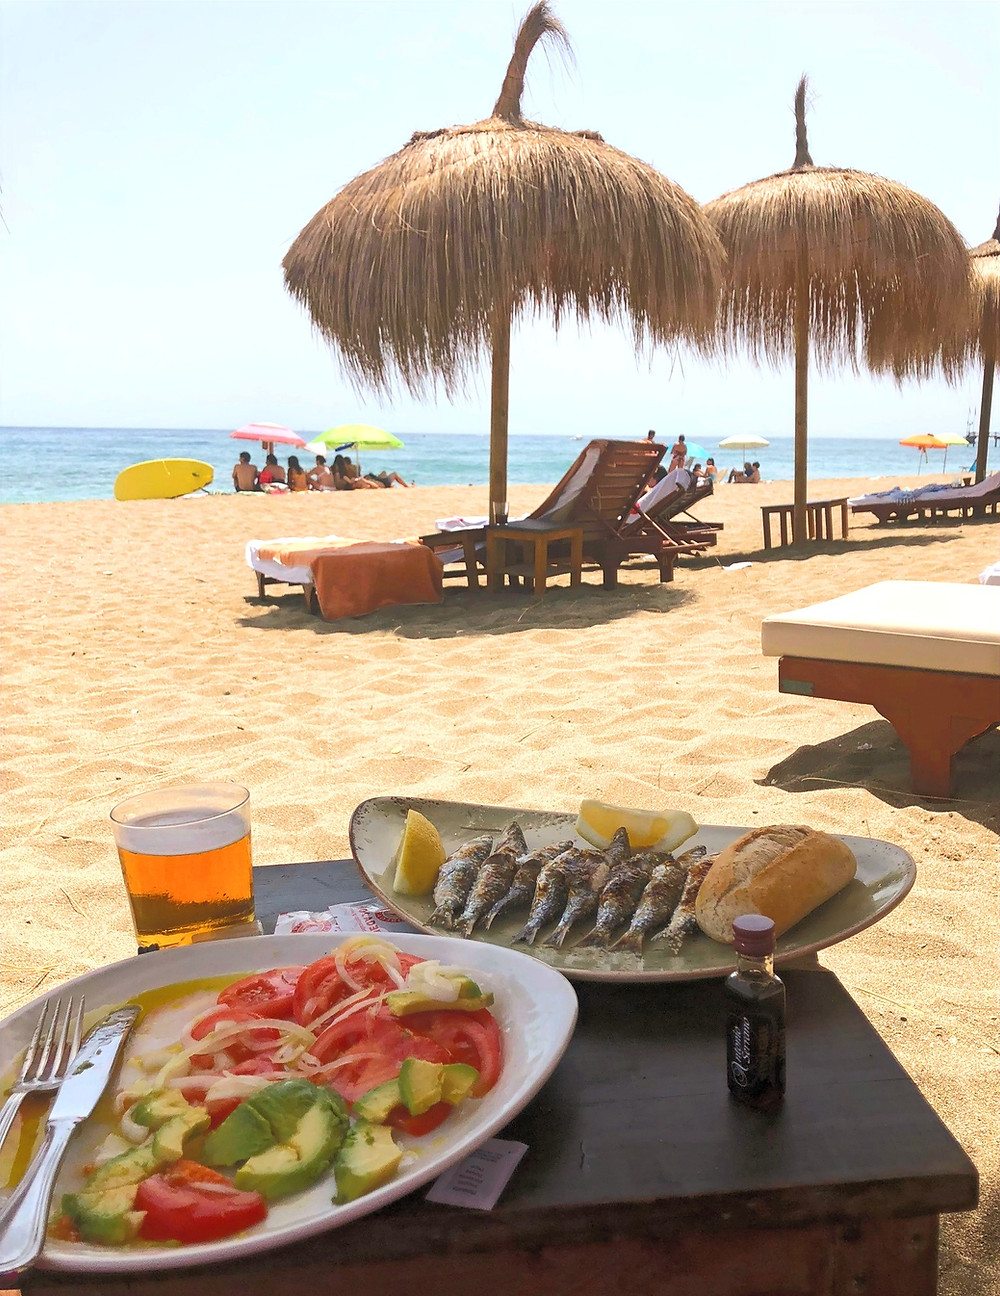 sardine skewers and avocado salad on the beach at Trocadero restaurant